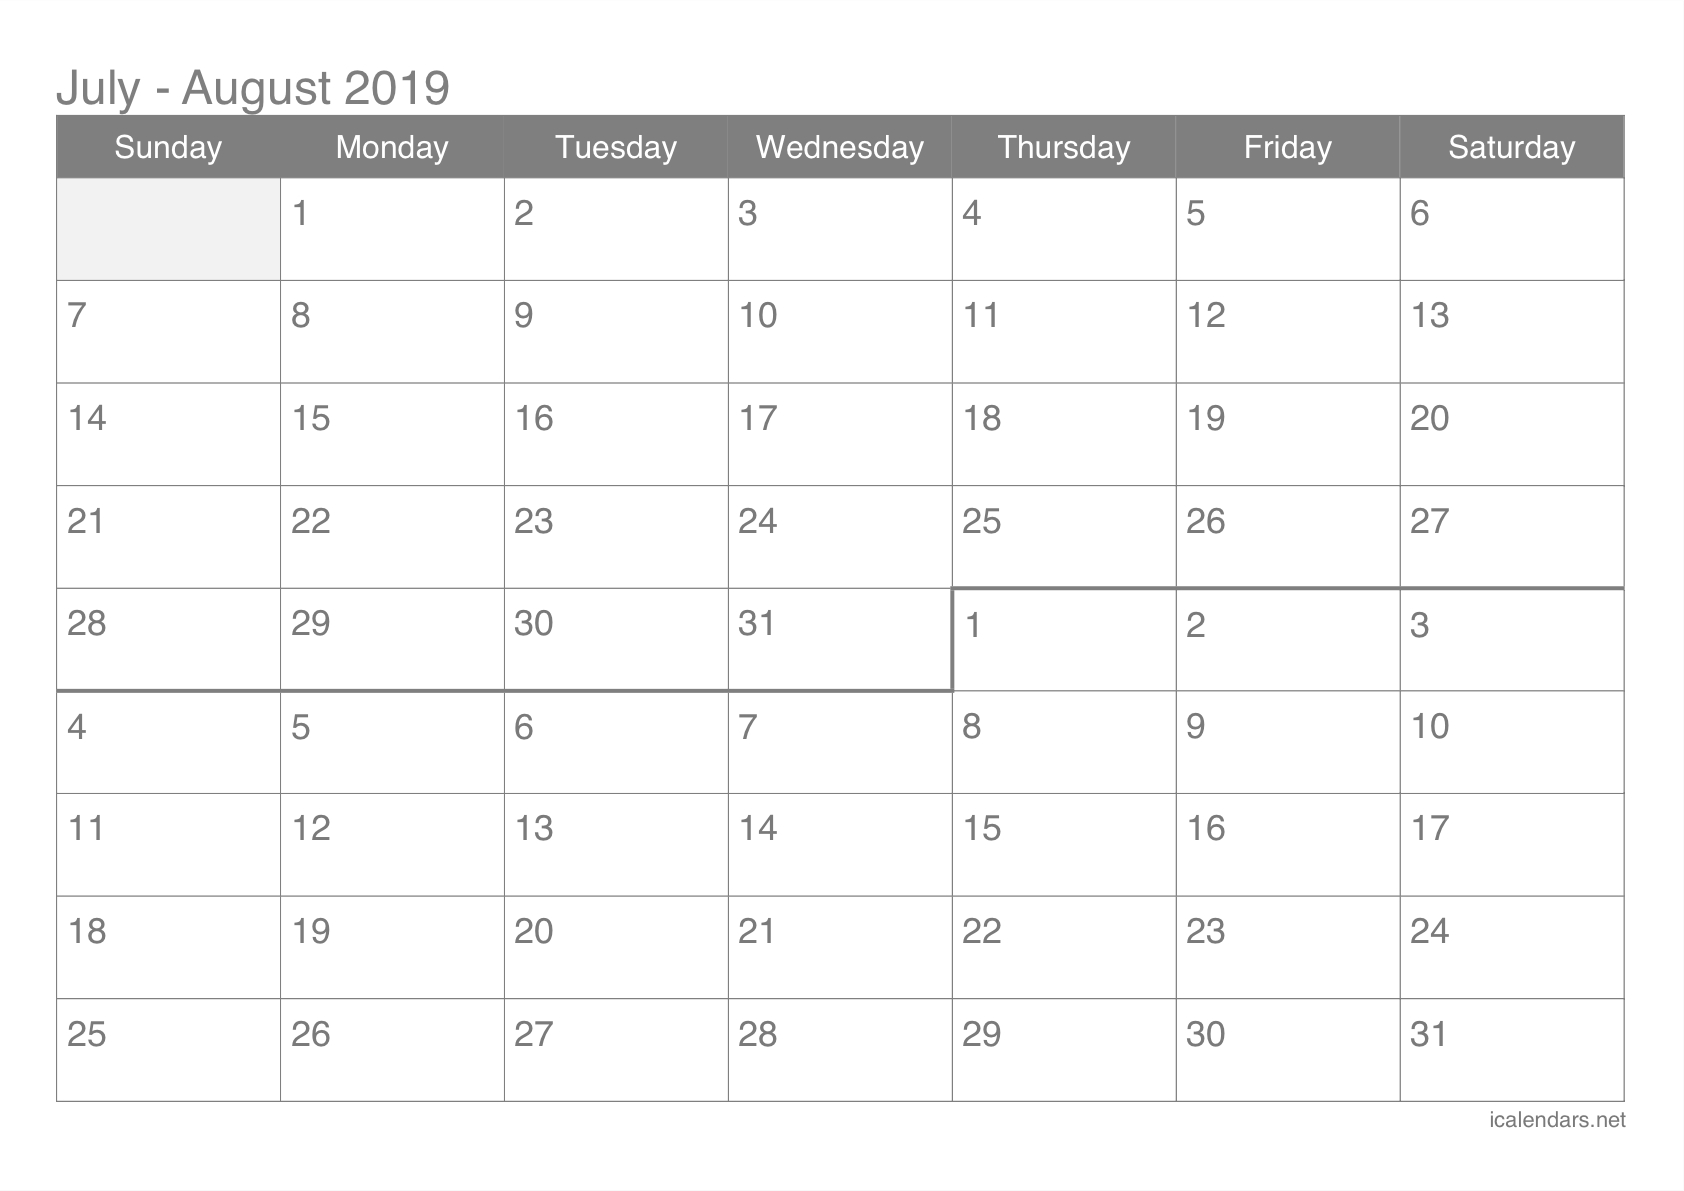 July And August 2019 Printable Calendar - Icalendars-Blank Calendar June July August Combination Printable